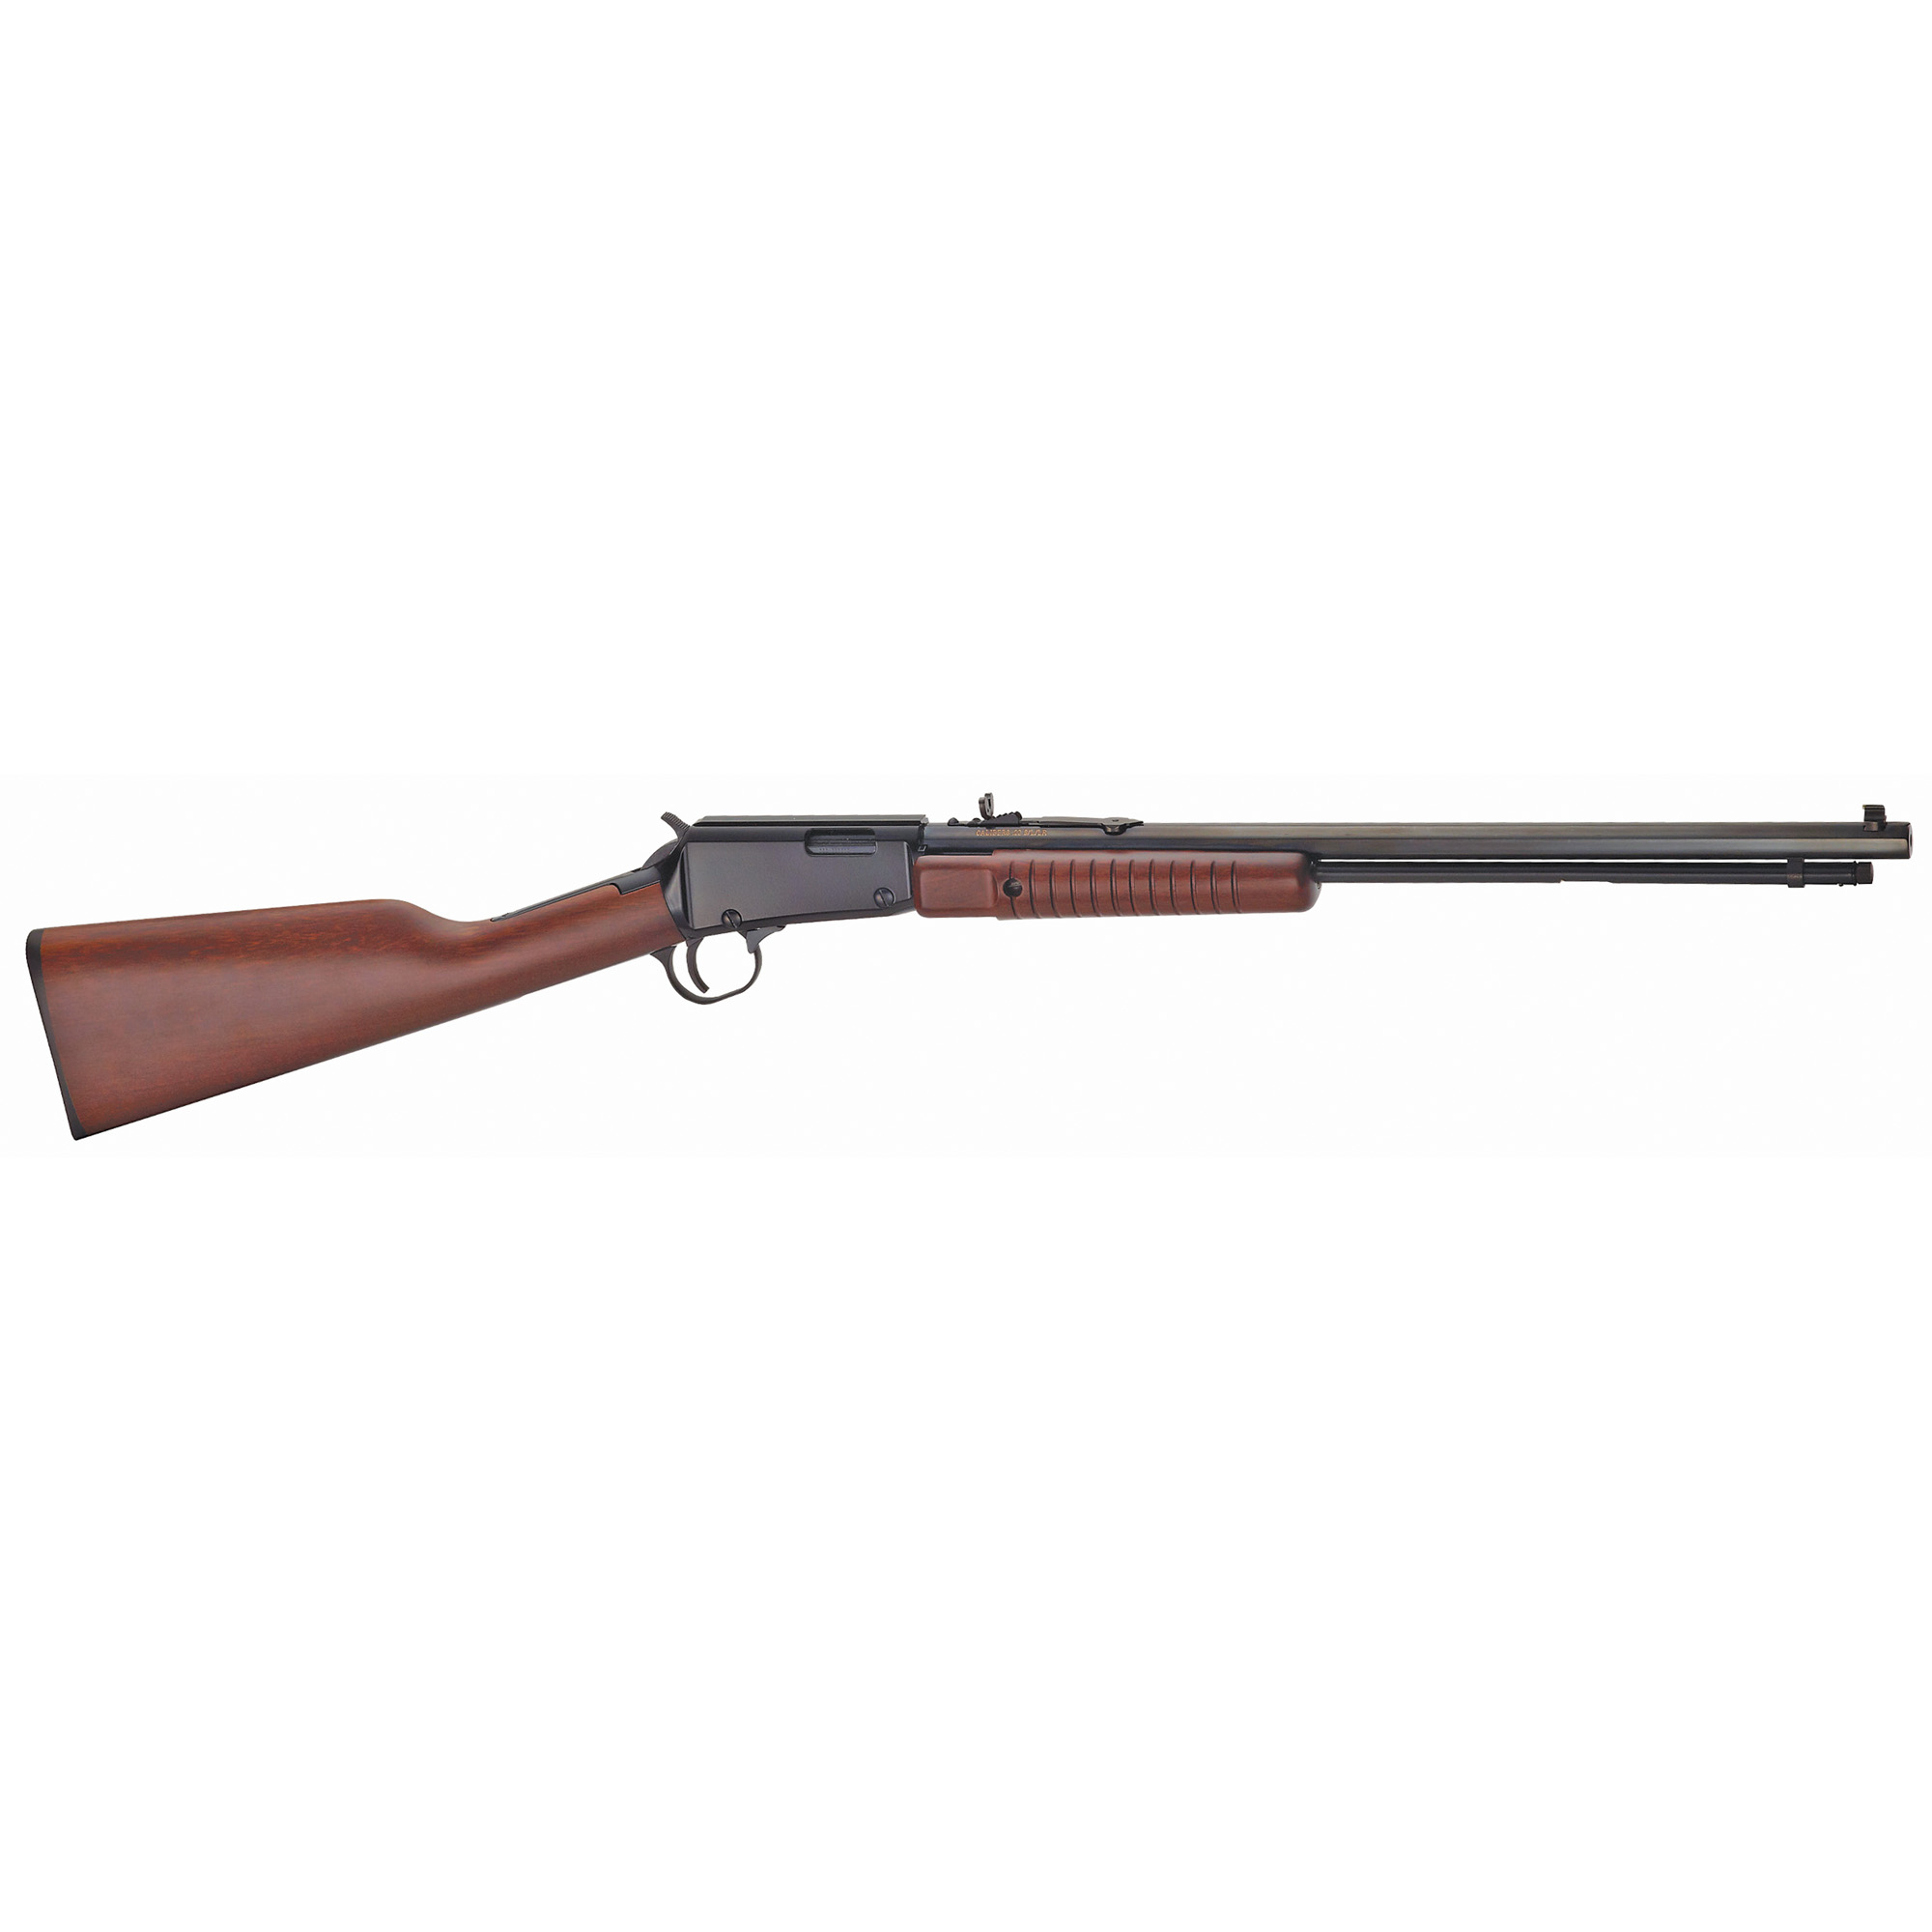 """The Henry Pump Action Octagon is an all-American icon. Fitted with a blue octagonal barrel"""" it resurrects the great old days of the traditional shooting gallery. The Henry Pump Action Octagon is available in .22LR or .22 Magnum and is built for fun."""